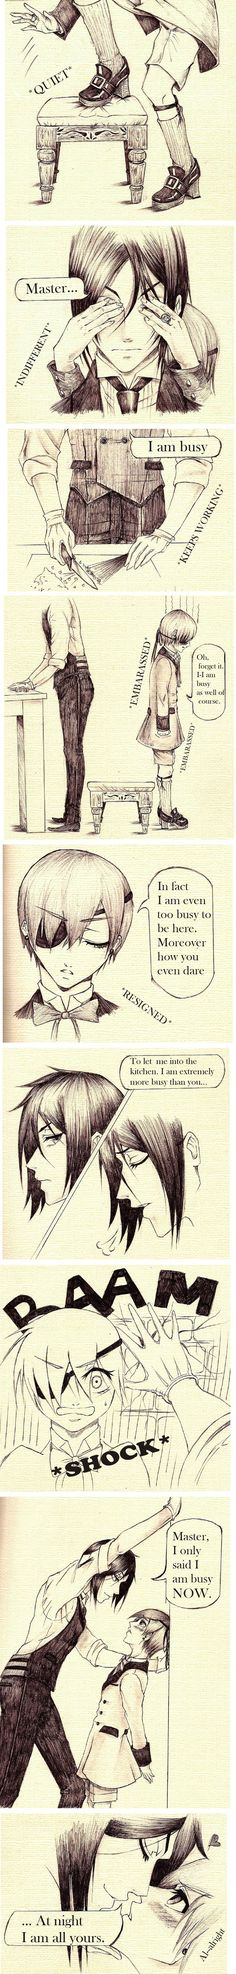 Sebastian x Ciel: You always surprise me by SebbyxCiel03.deviantart.com on @deviantART THIS IS THE MOST PERFECT THING IN THE WHOLE FLIPPING WORLD!!!!